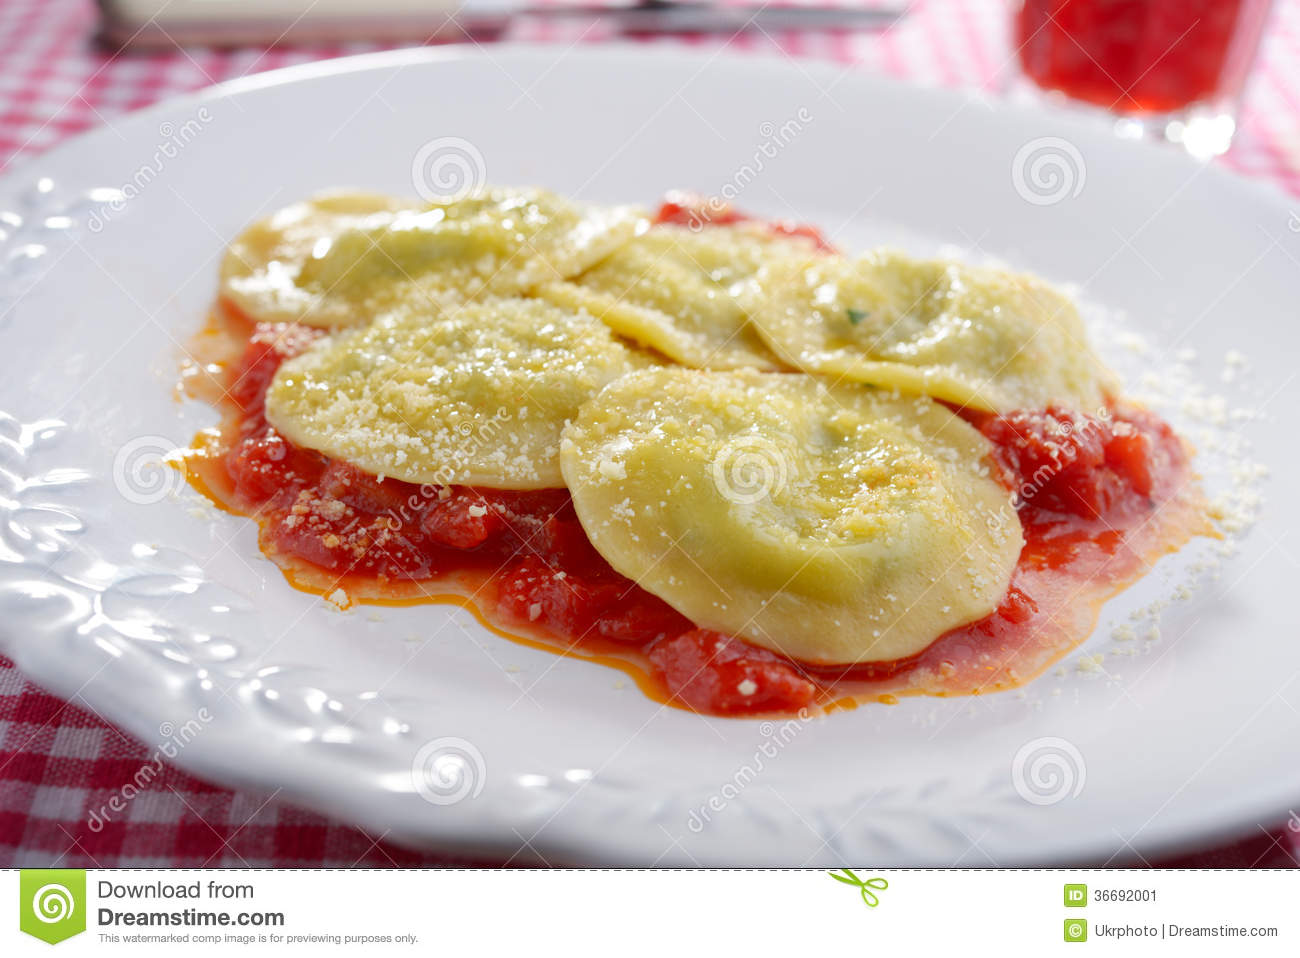 Spinach and ricotta ravioli with tomato and grated Parmesan.